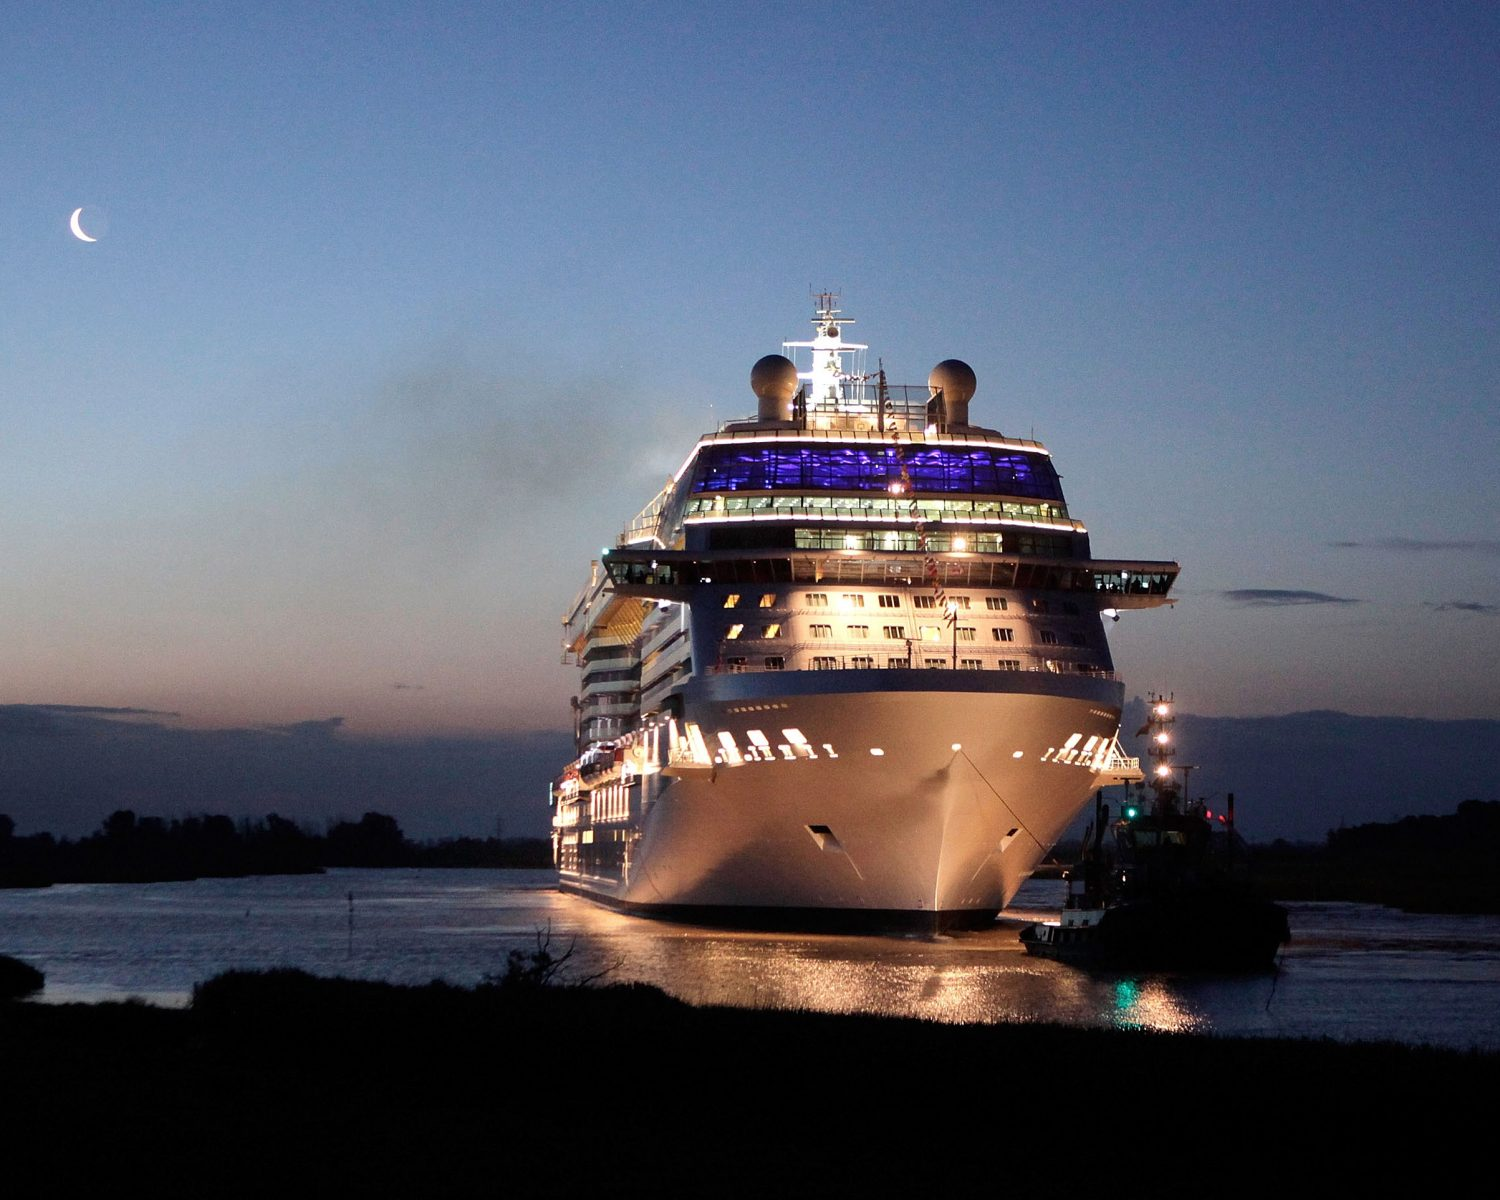 Best Cruises for Young Couple? : Cruise - reddit